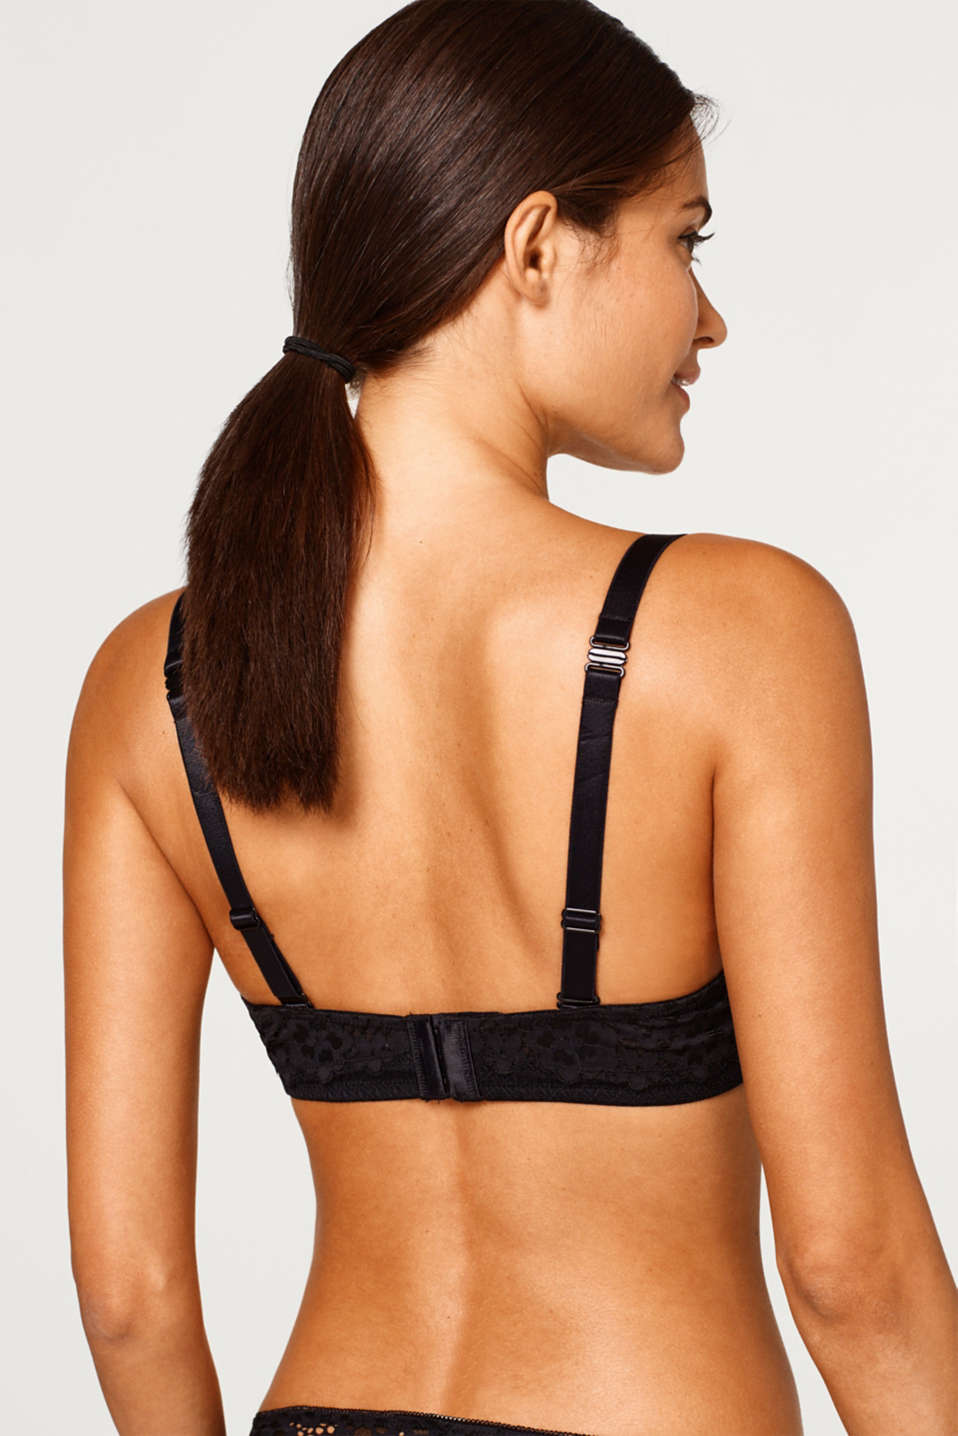 Unpadded underwire bra for larger cup sizes